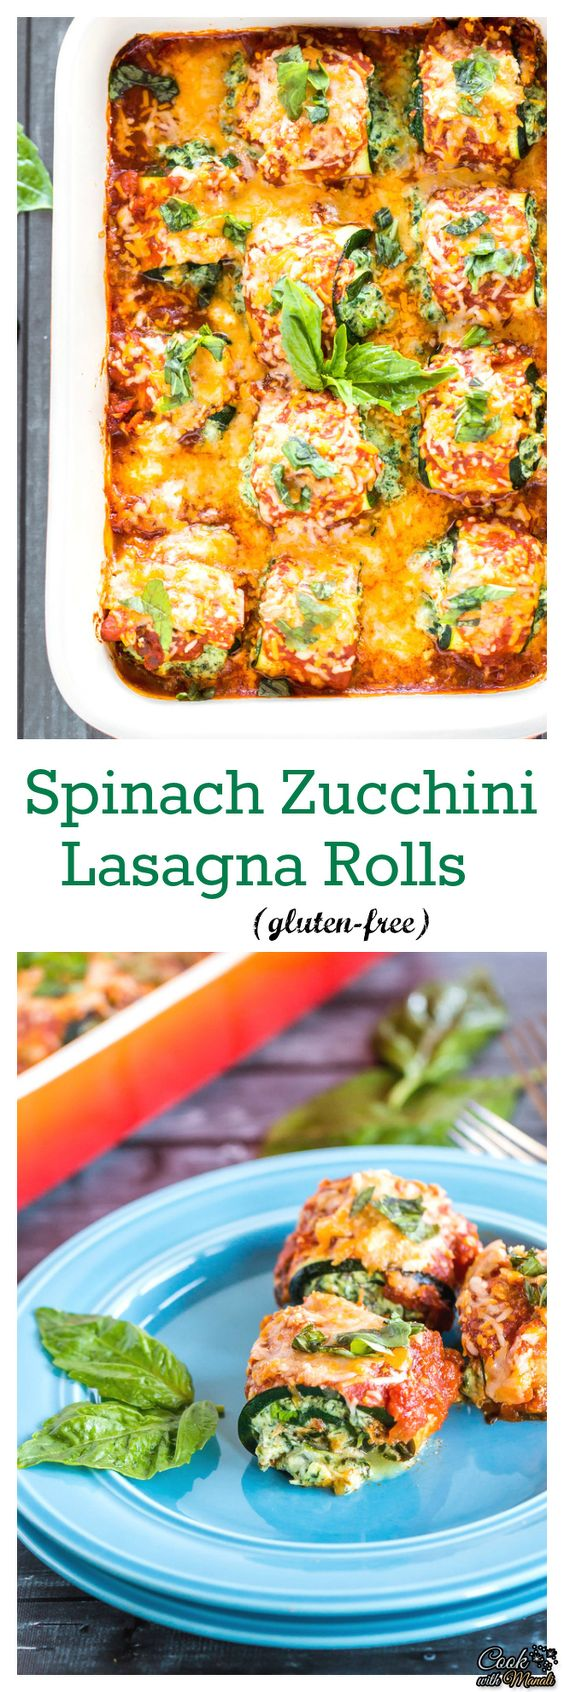 All the flavors of spinach lasagna in a healthier, gluten-free form! These spinach zucchini lasagna rolls are easy to whip and taste delicious. You wouldn't even realize you are eating zucchini! #vegetarian #dinner #meatlessmonday